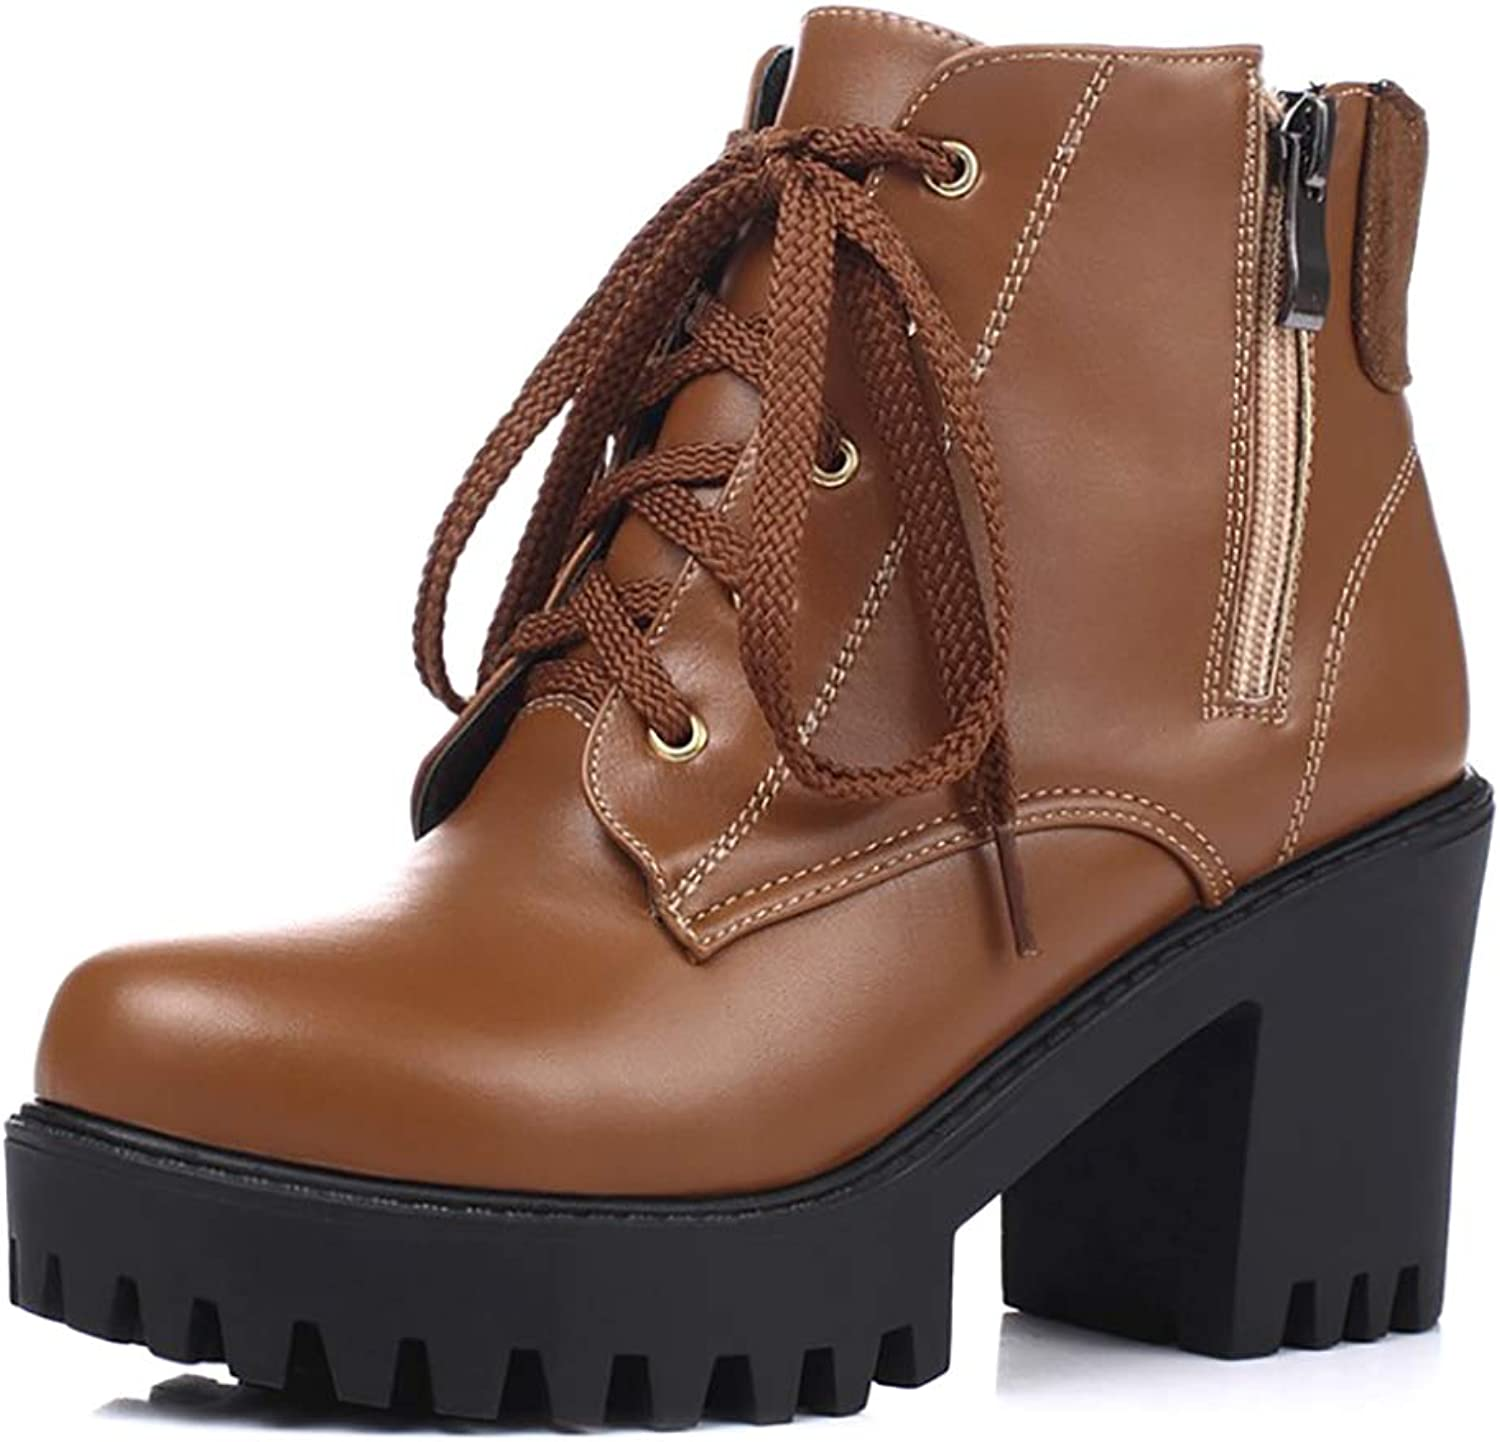 Catata Women's Stylish Side Zipper Booties Lace Up Chunky High-Heeled Platform Ankle Boots